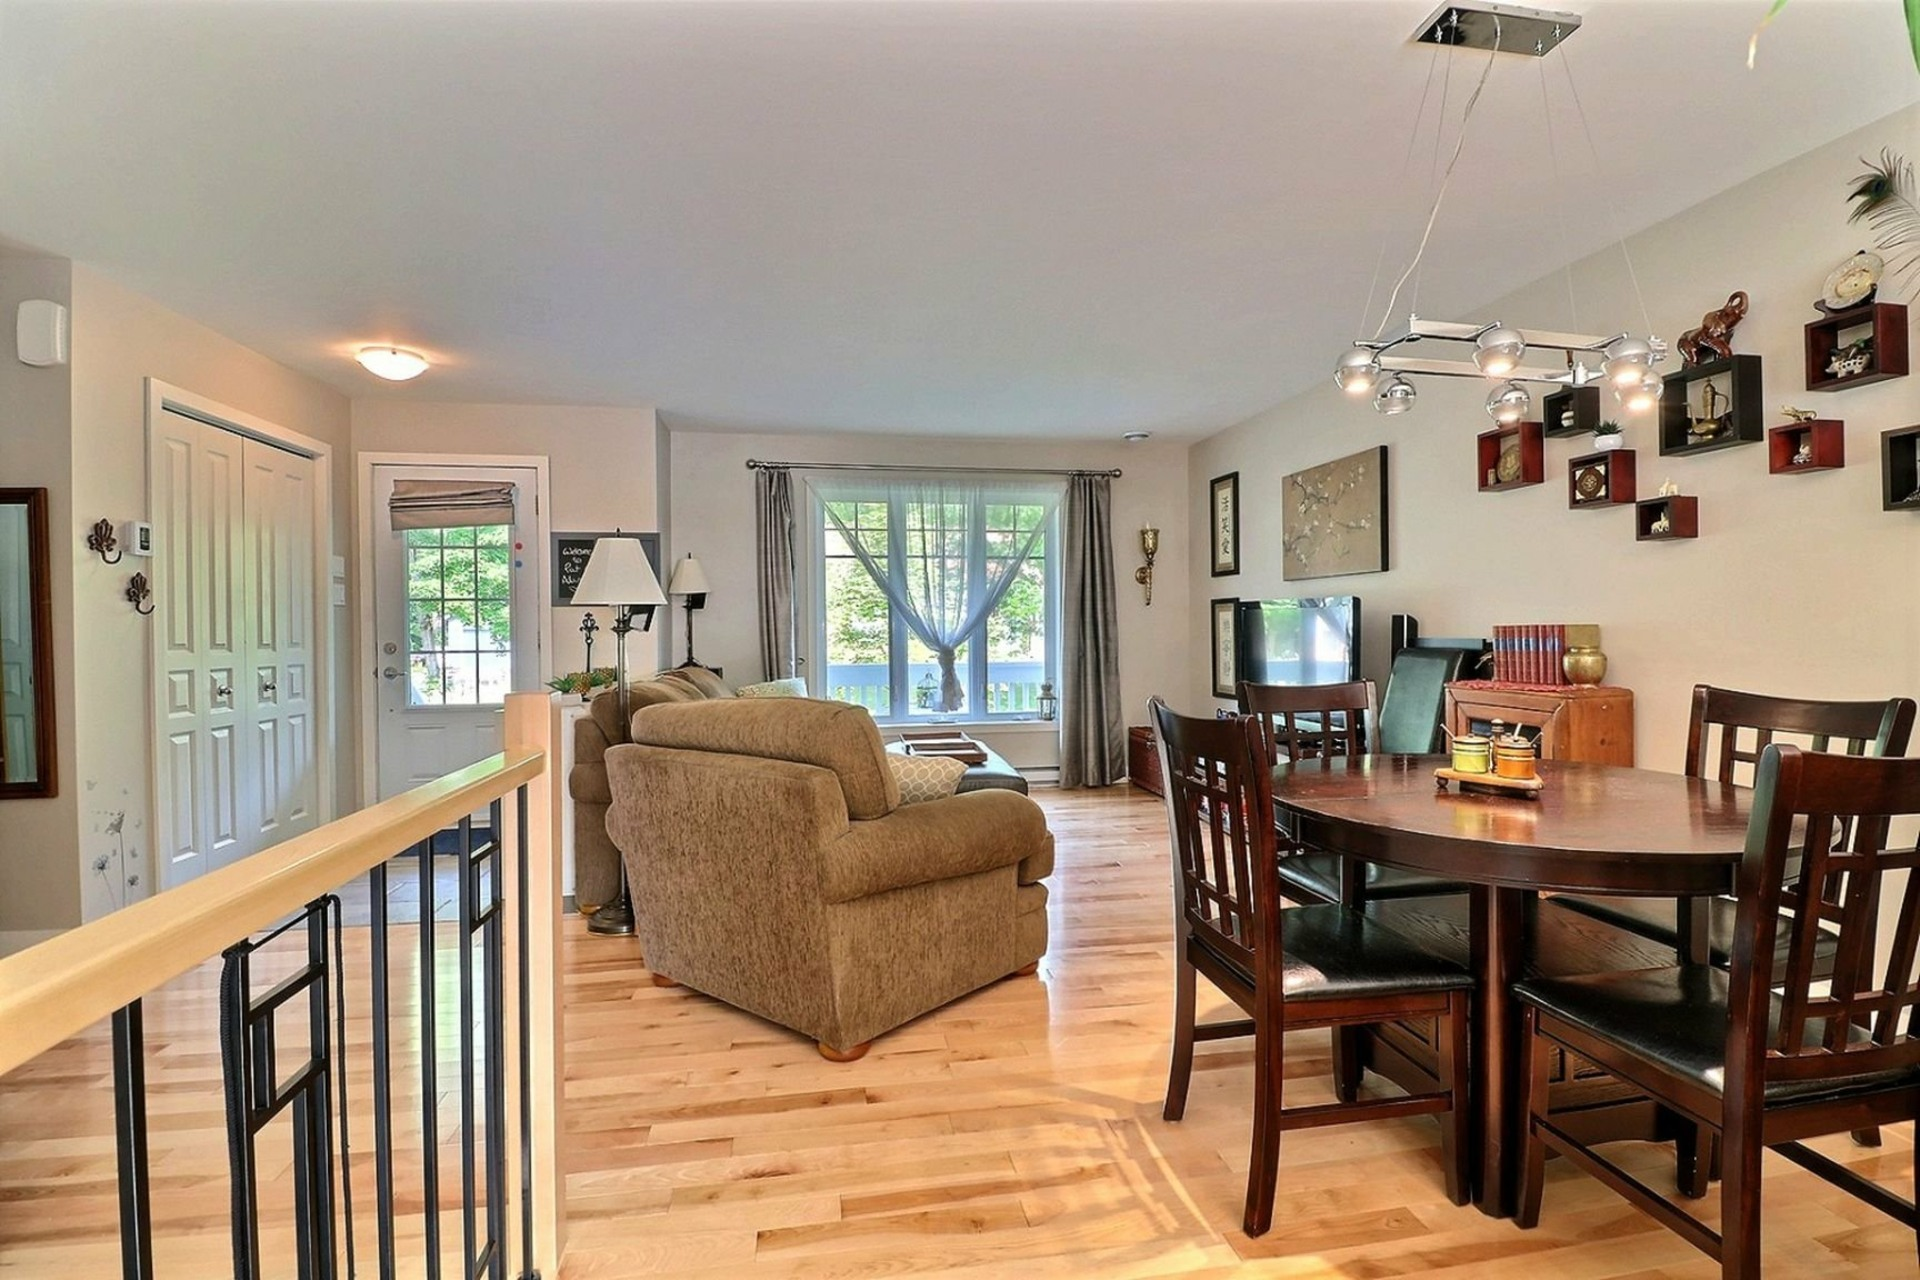 image 9 - House For sale Rawdon - 6 rooms